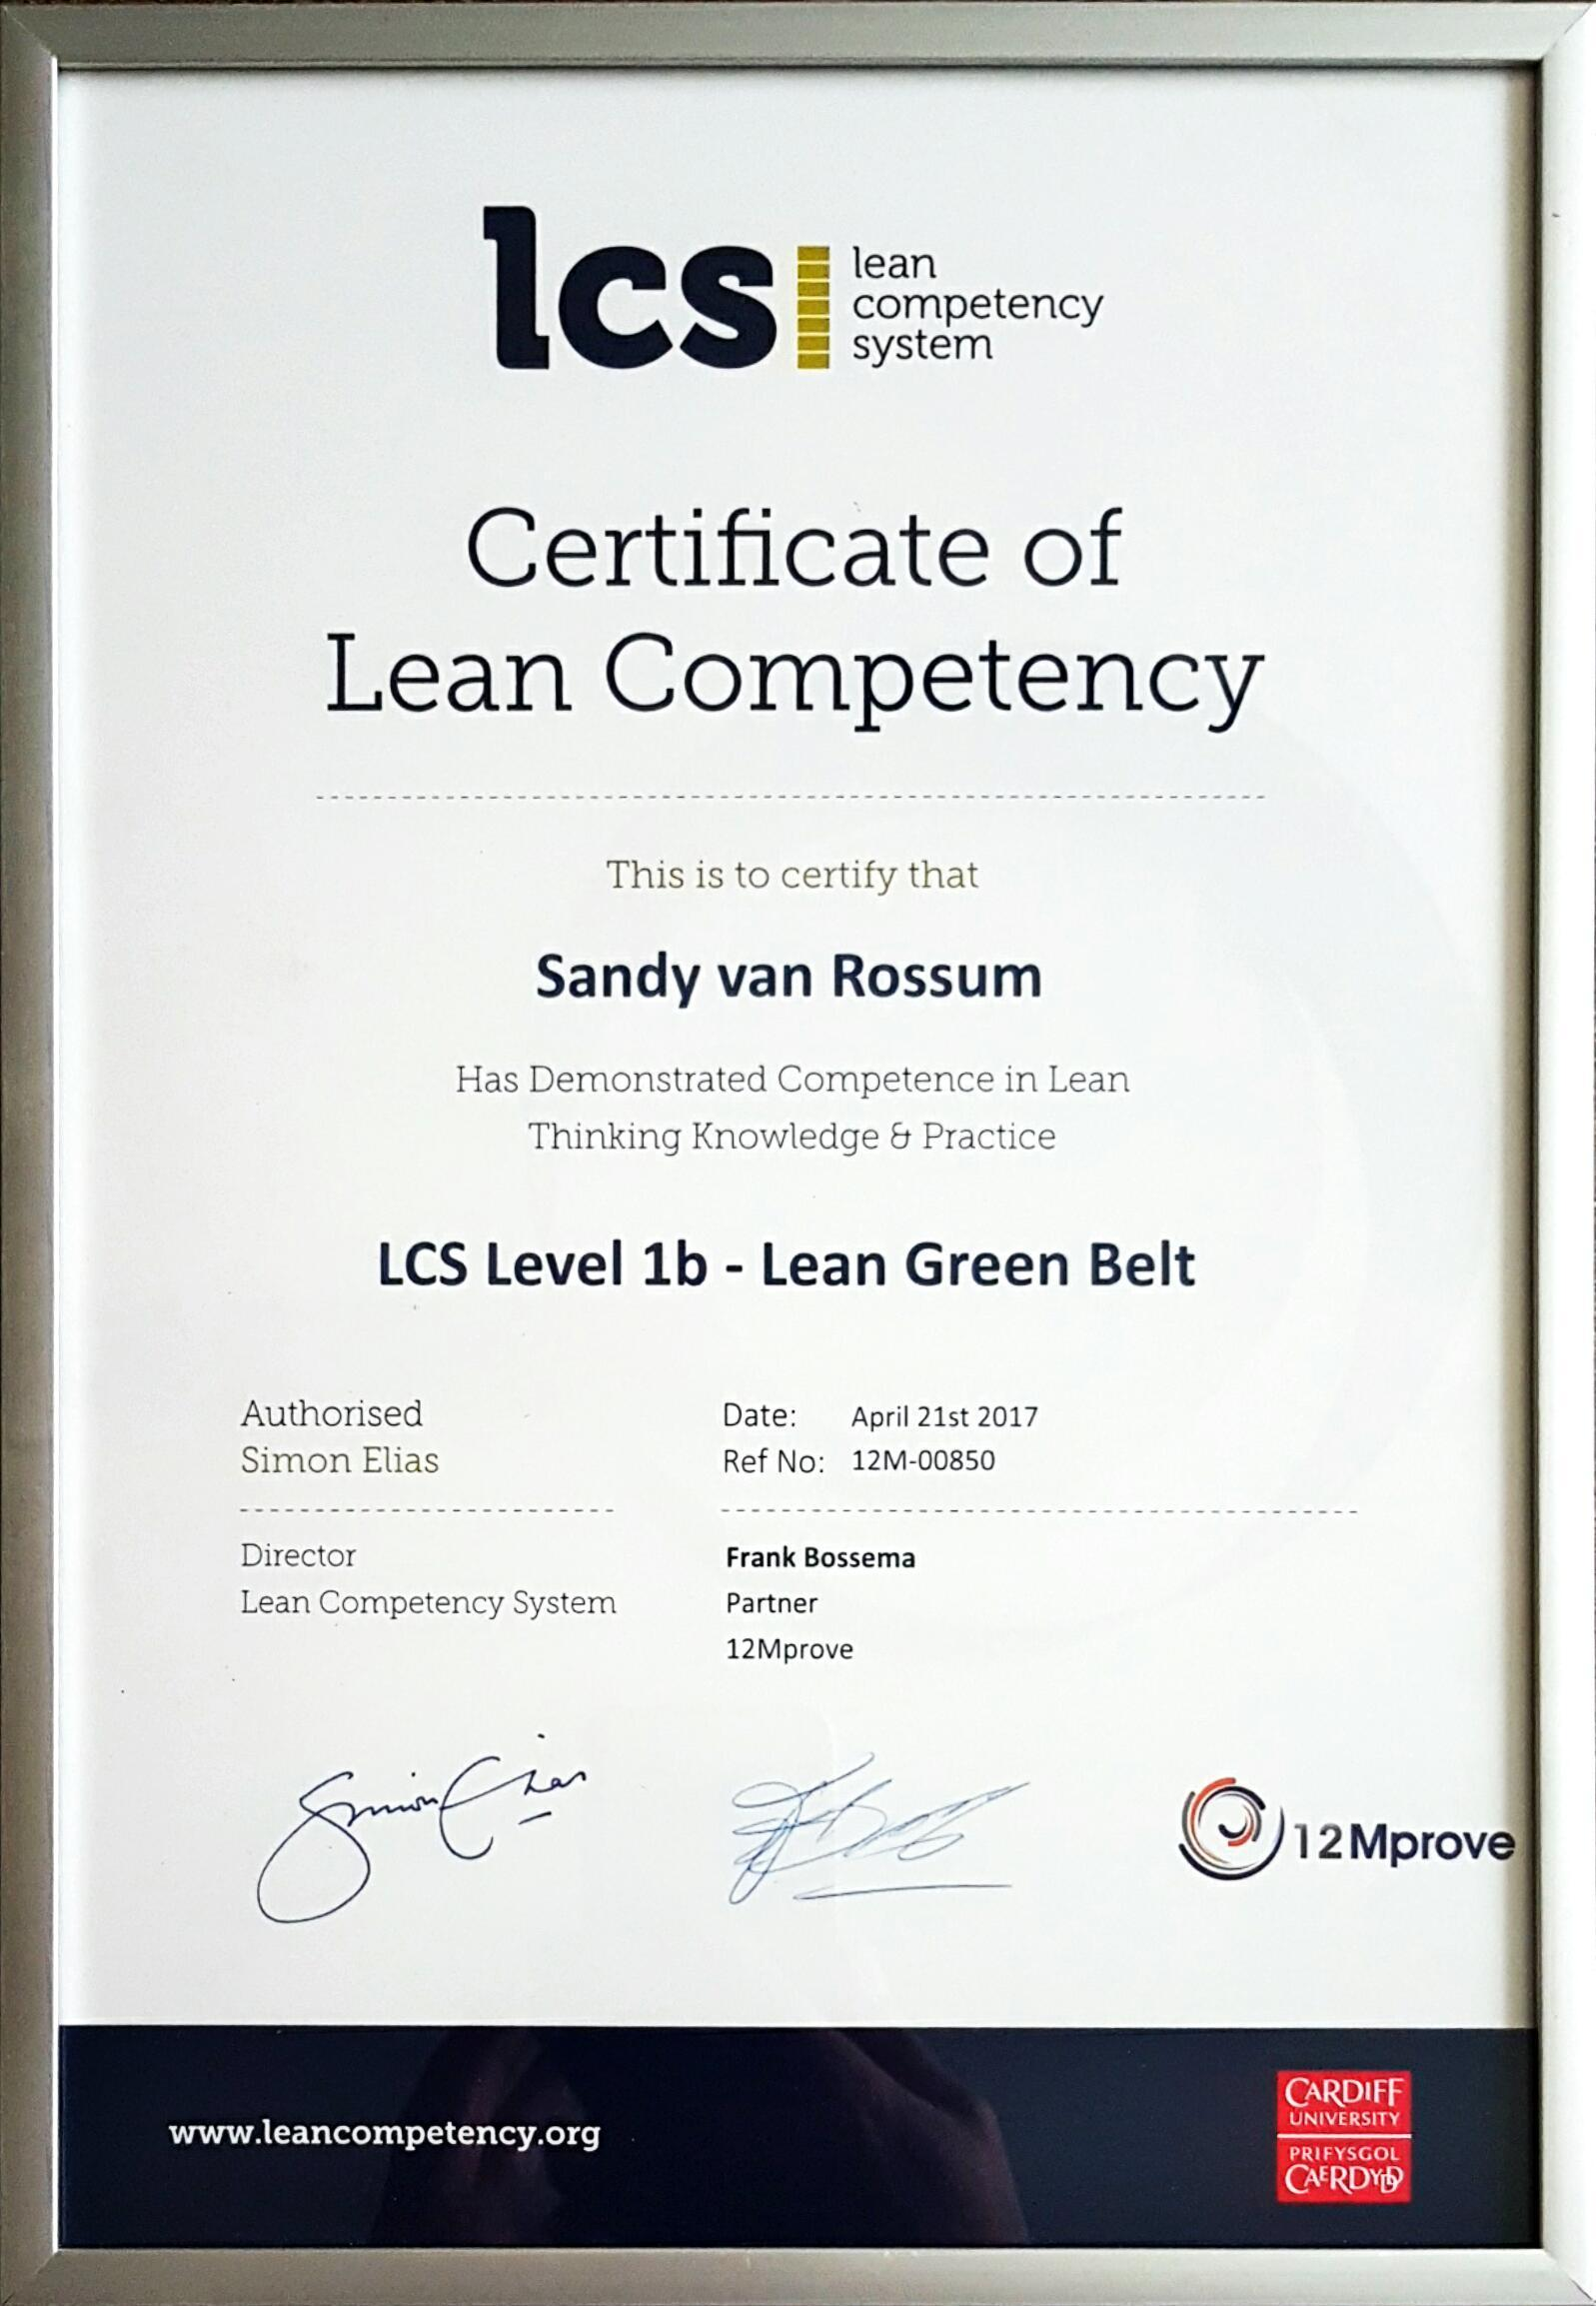 Sandy van Rossum LCS Level 1b Lean Green Belt